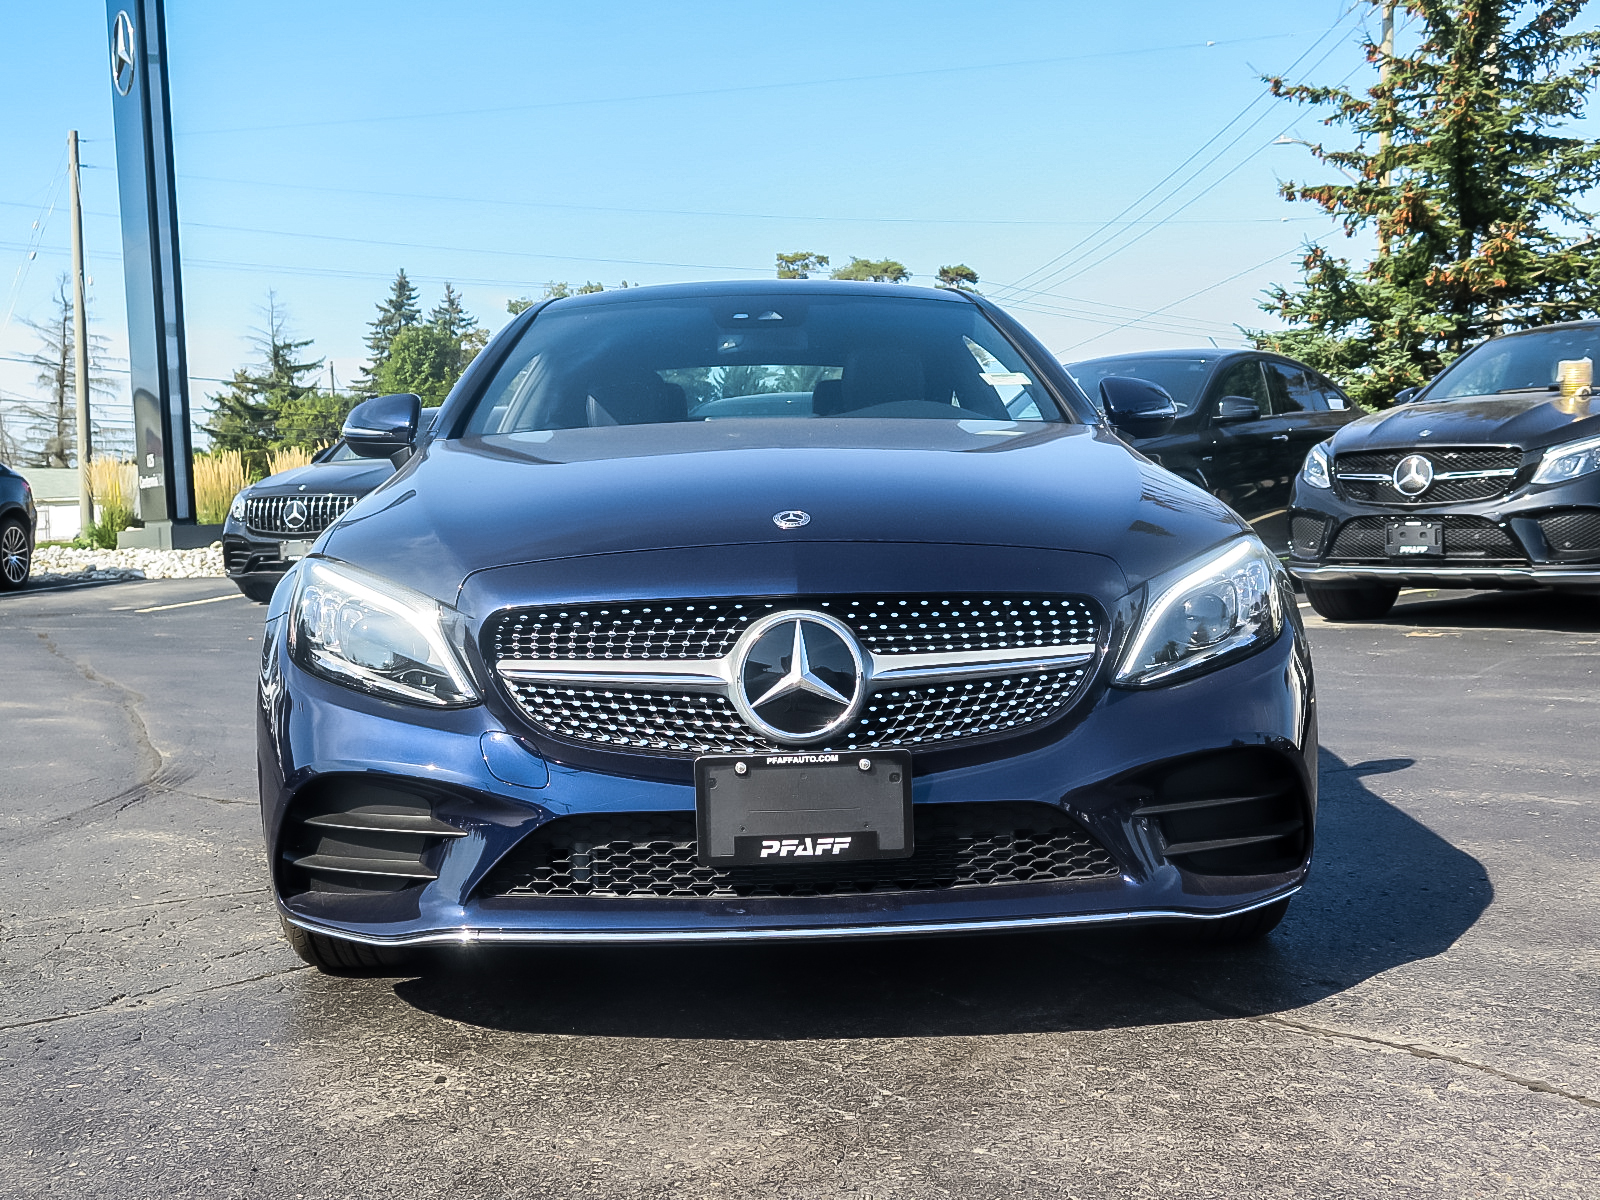 New 2020 Mercedes-Benz C300 4MATIC Coupe